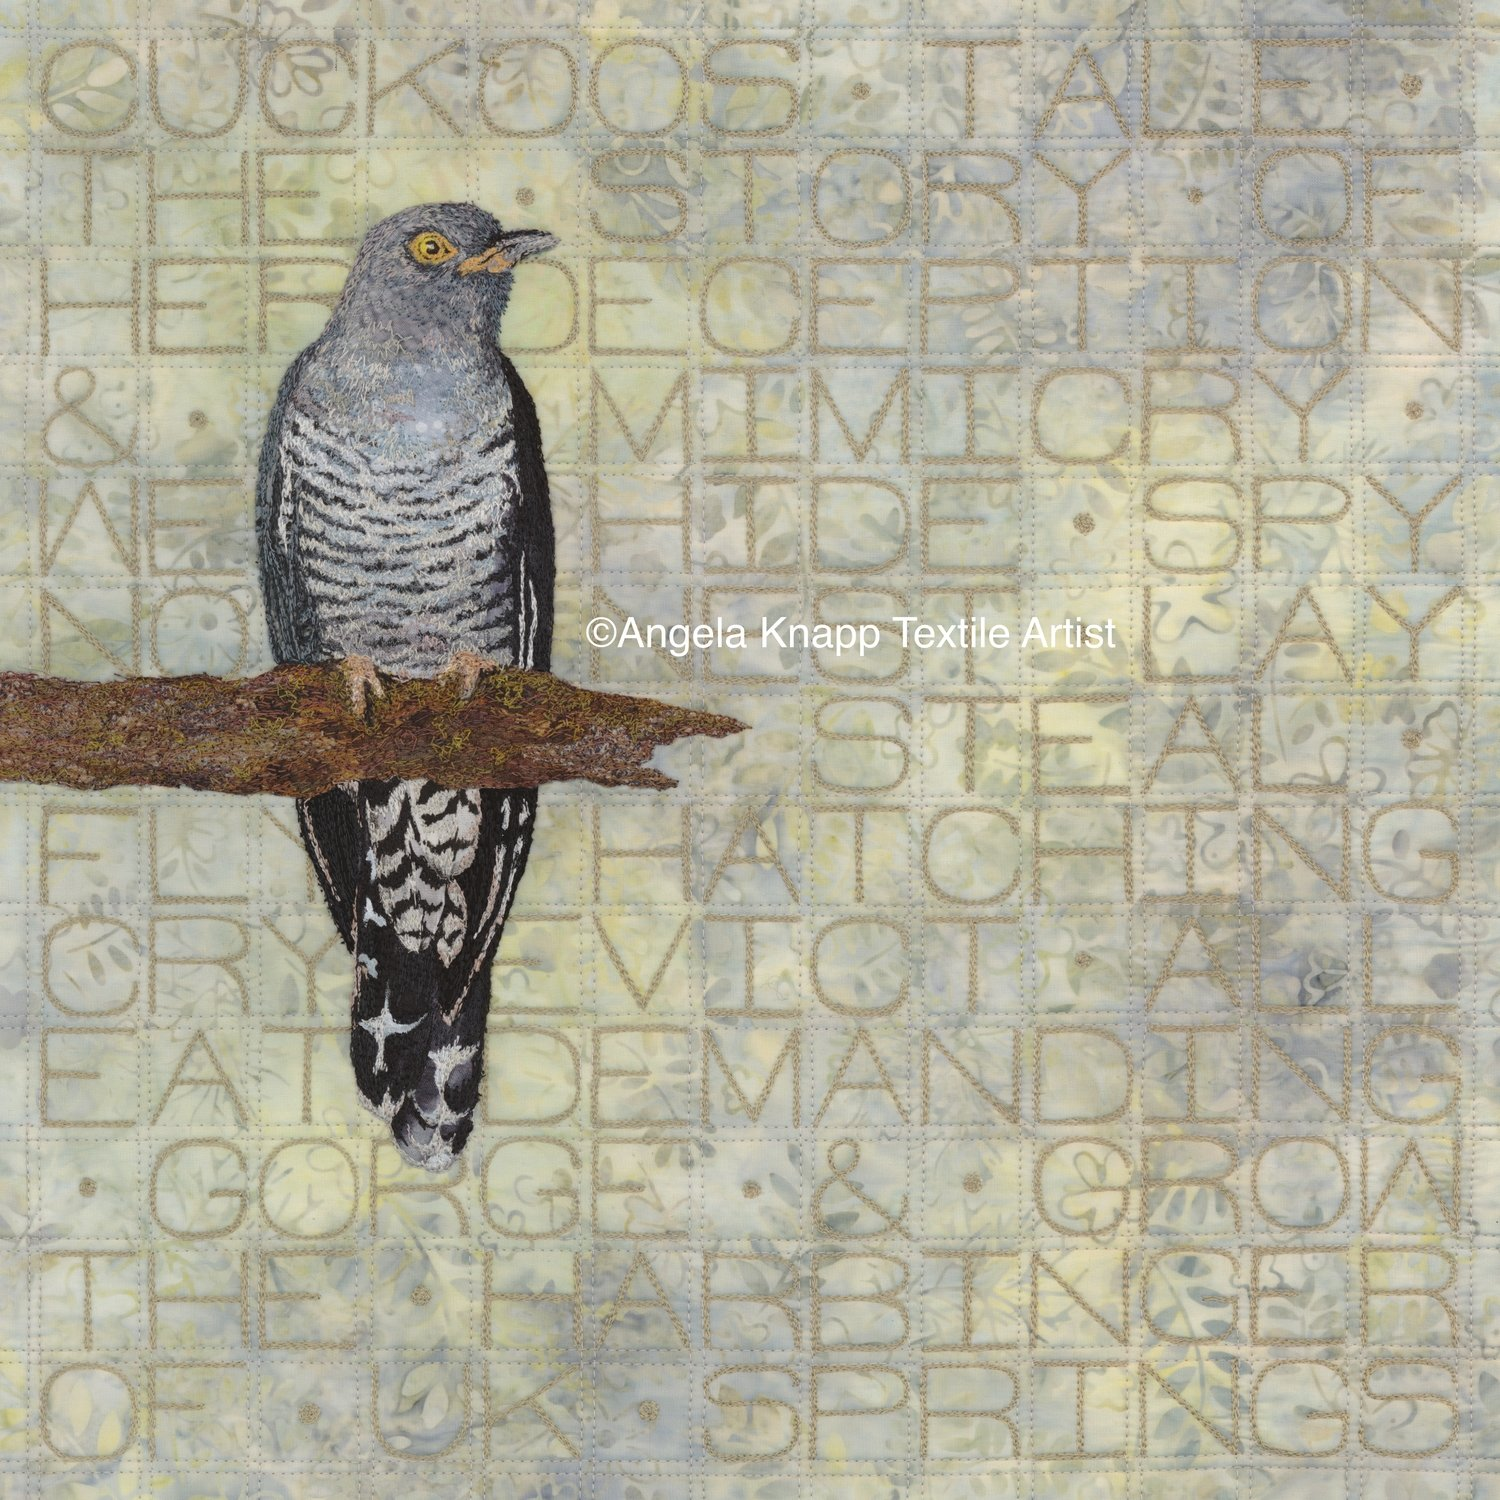 'A Cuckoo's Tales' - Limited Edition Giclee Print